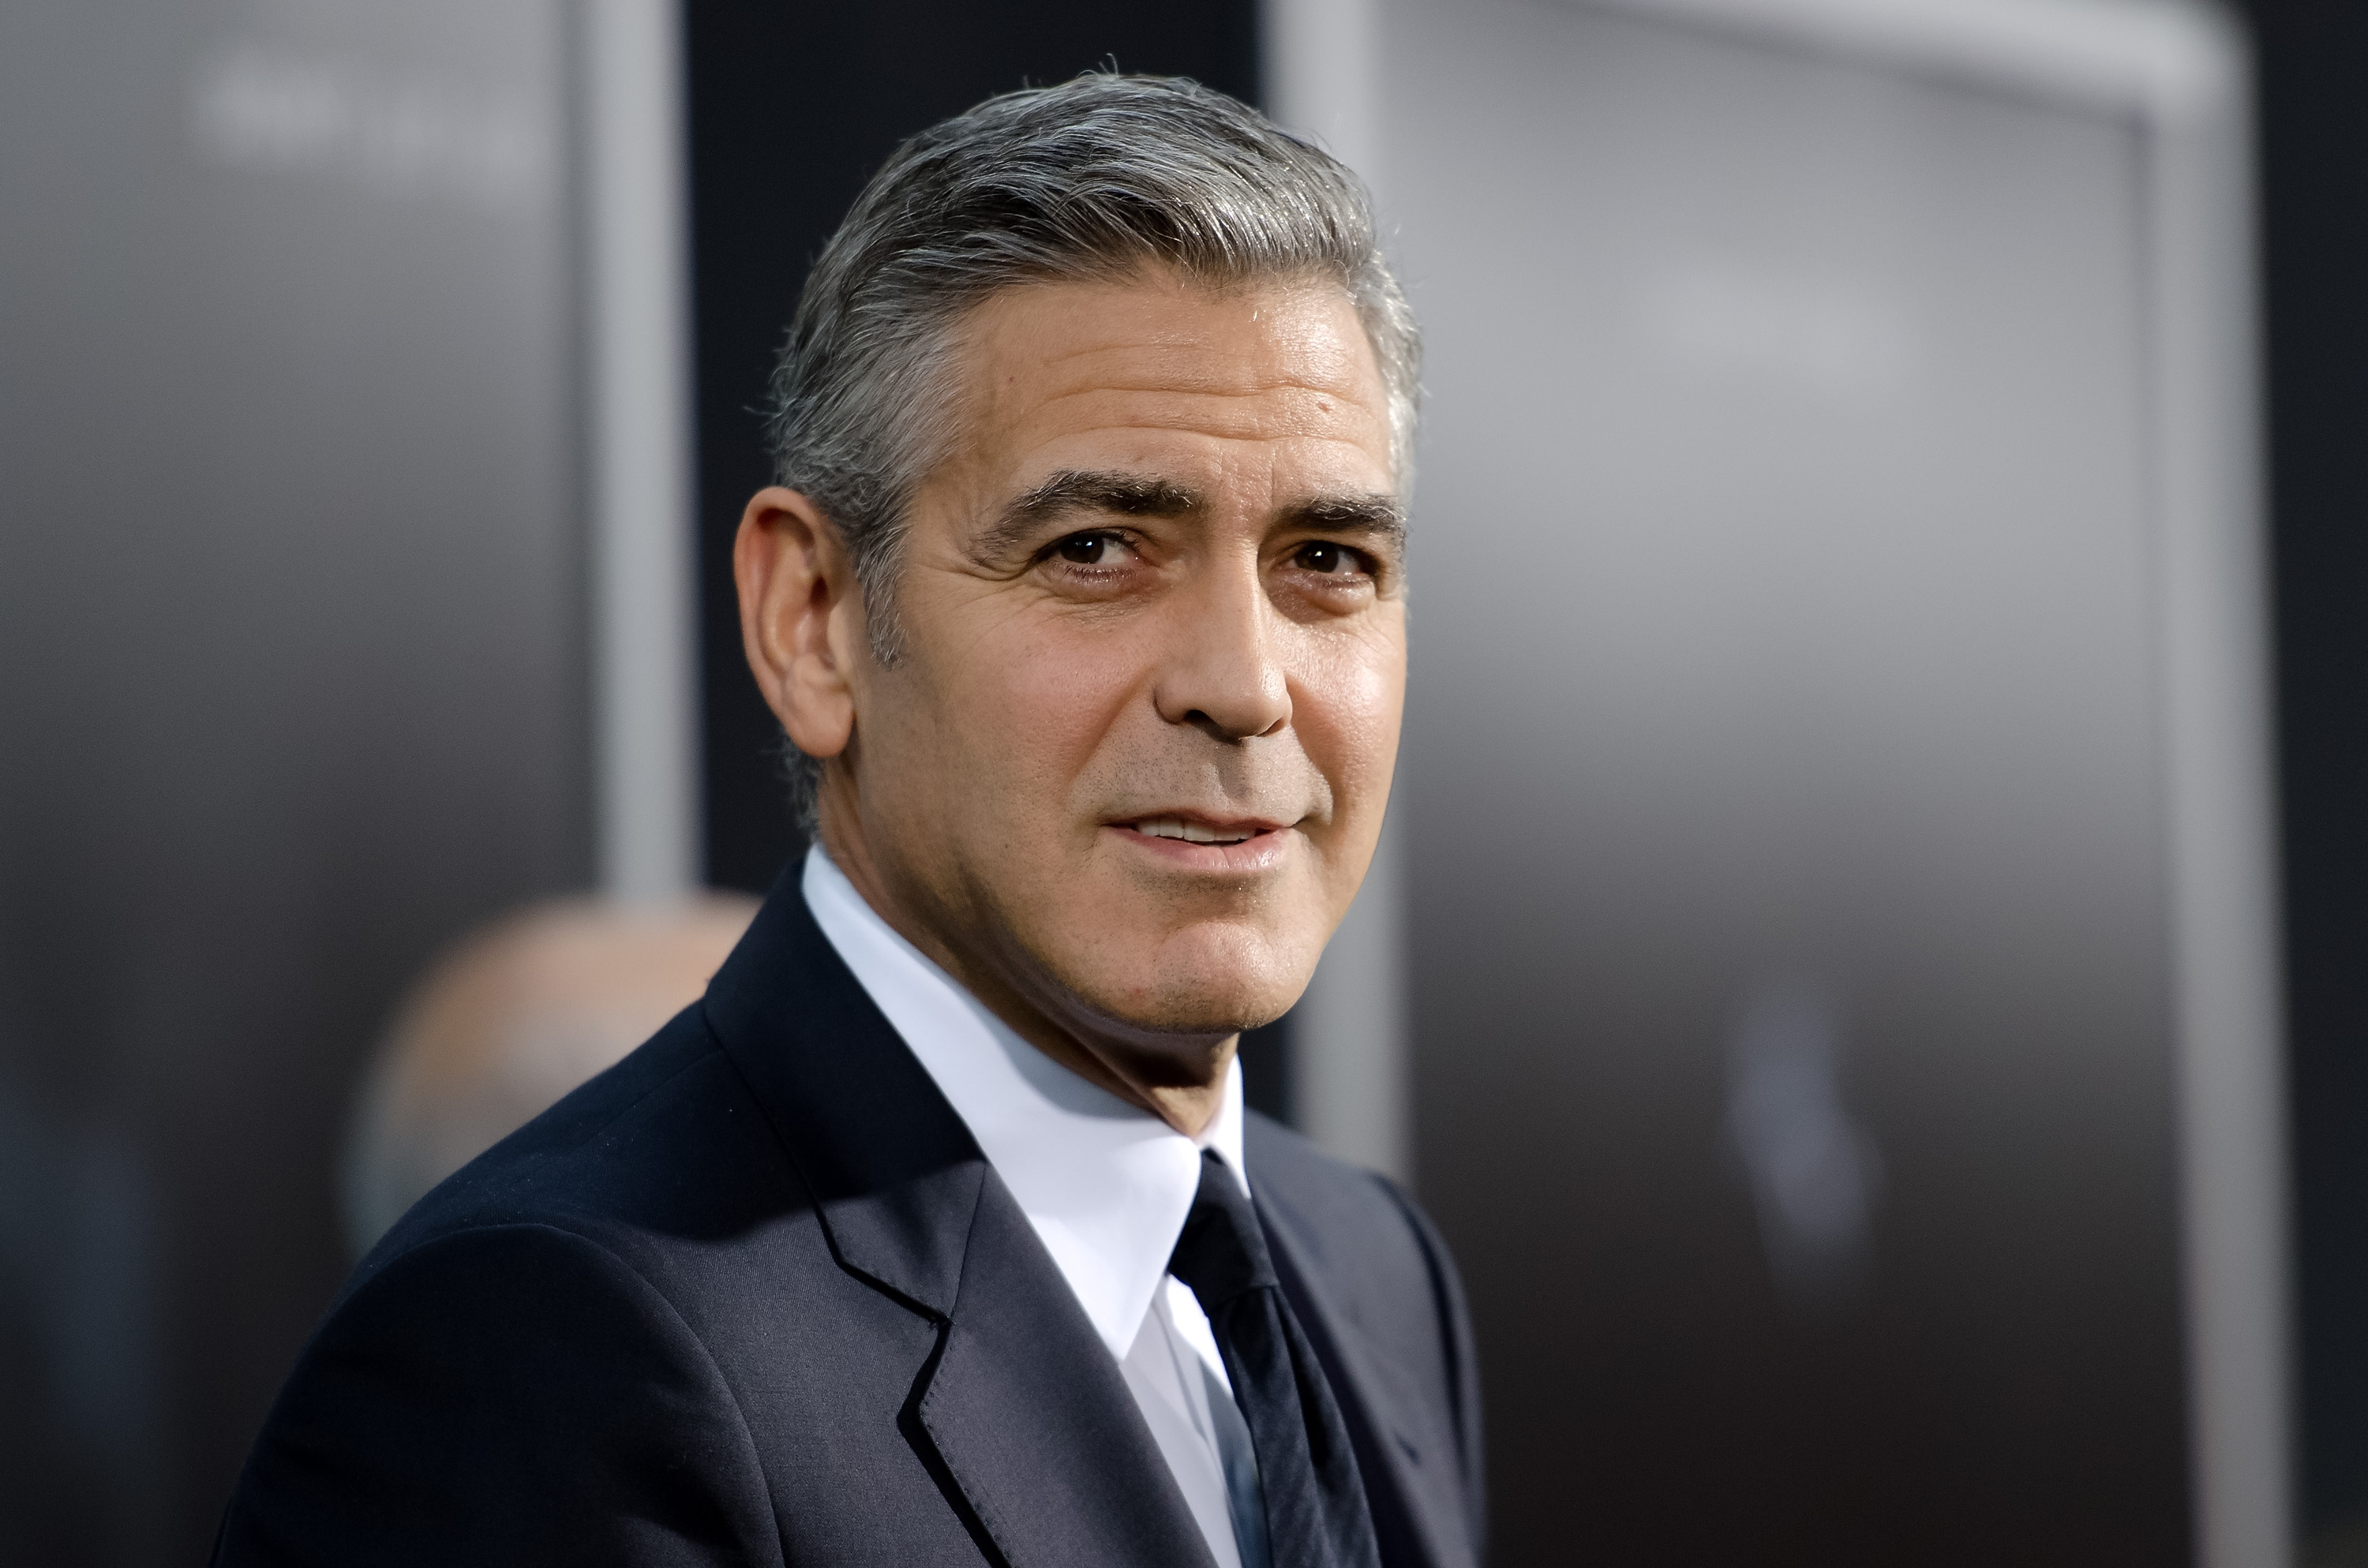 George Clooney Wallpapers   Top George Clooney Backgrounds 3000x1987